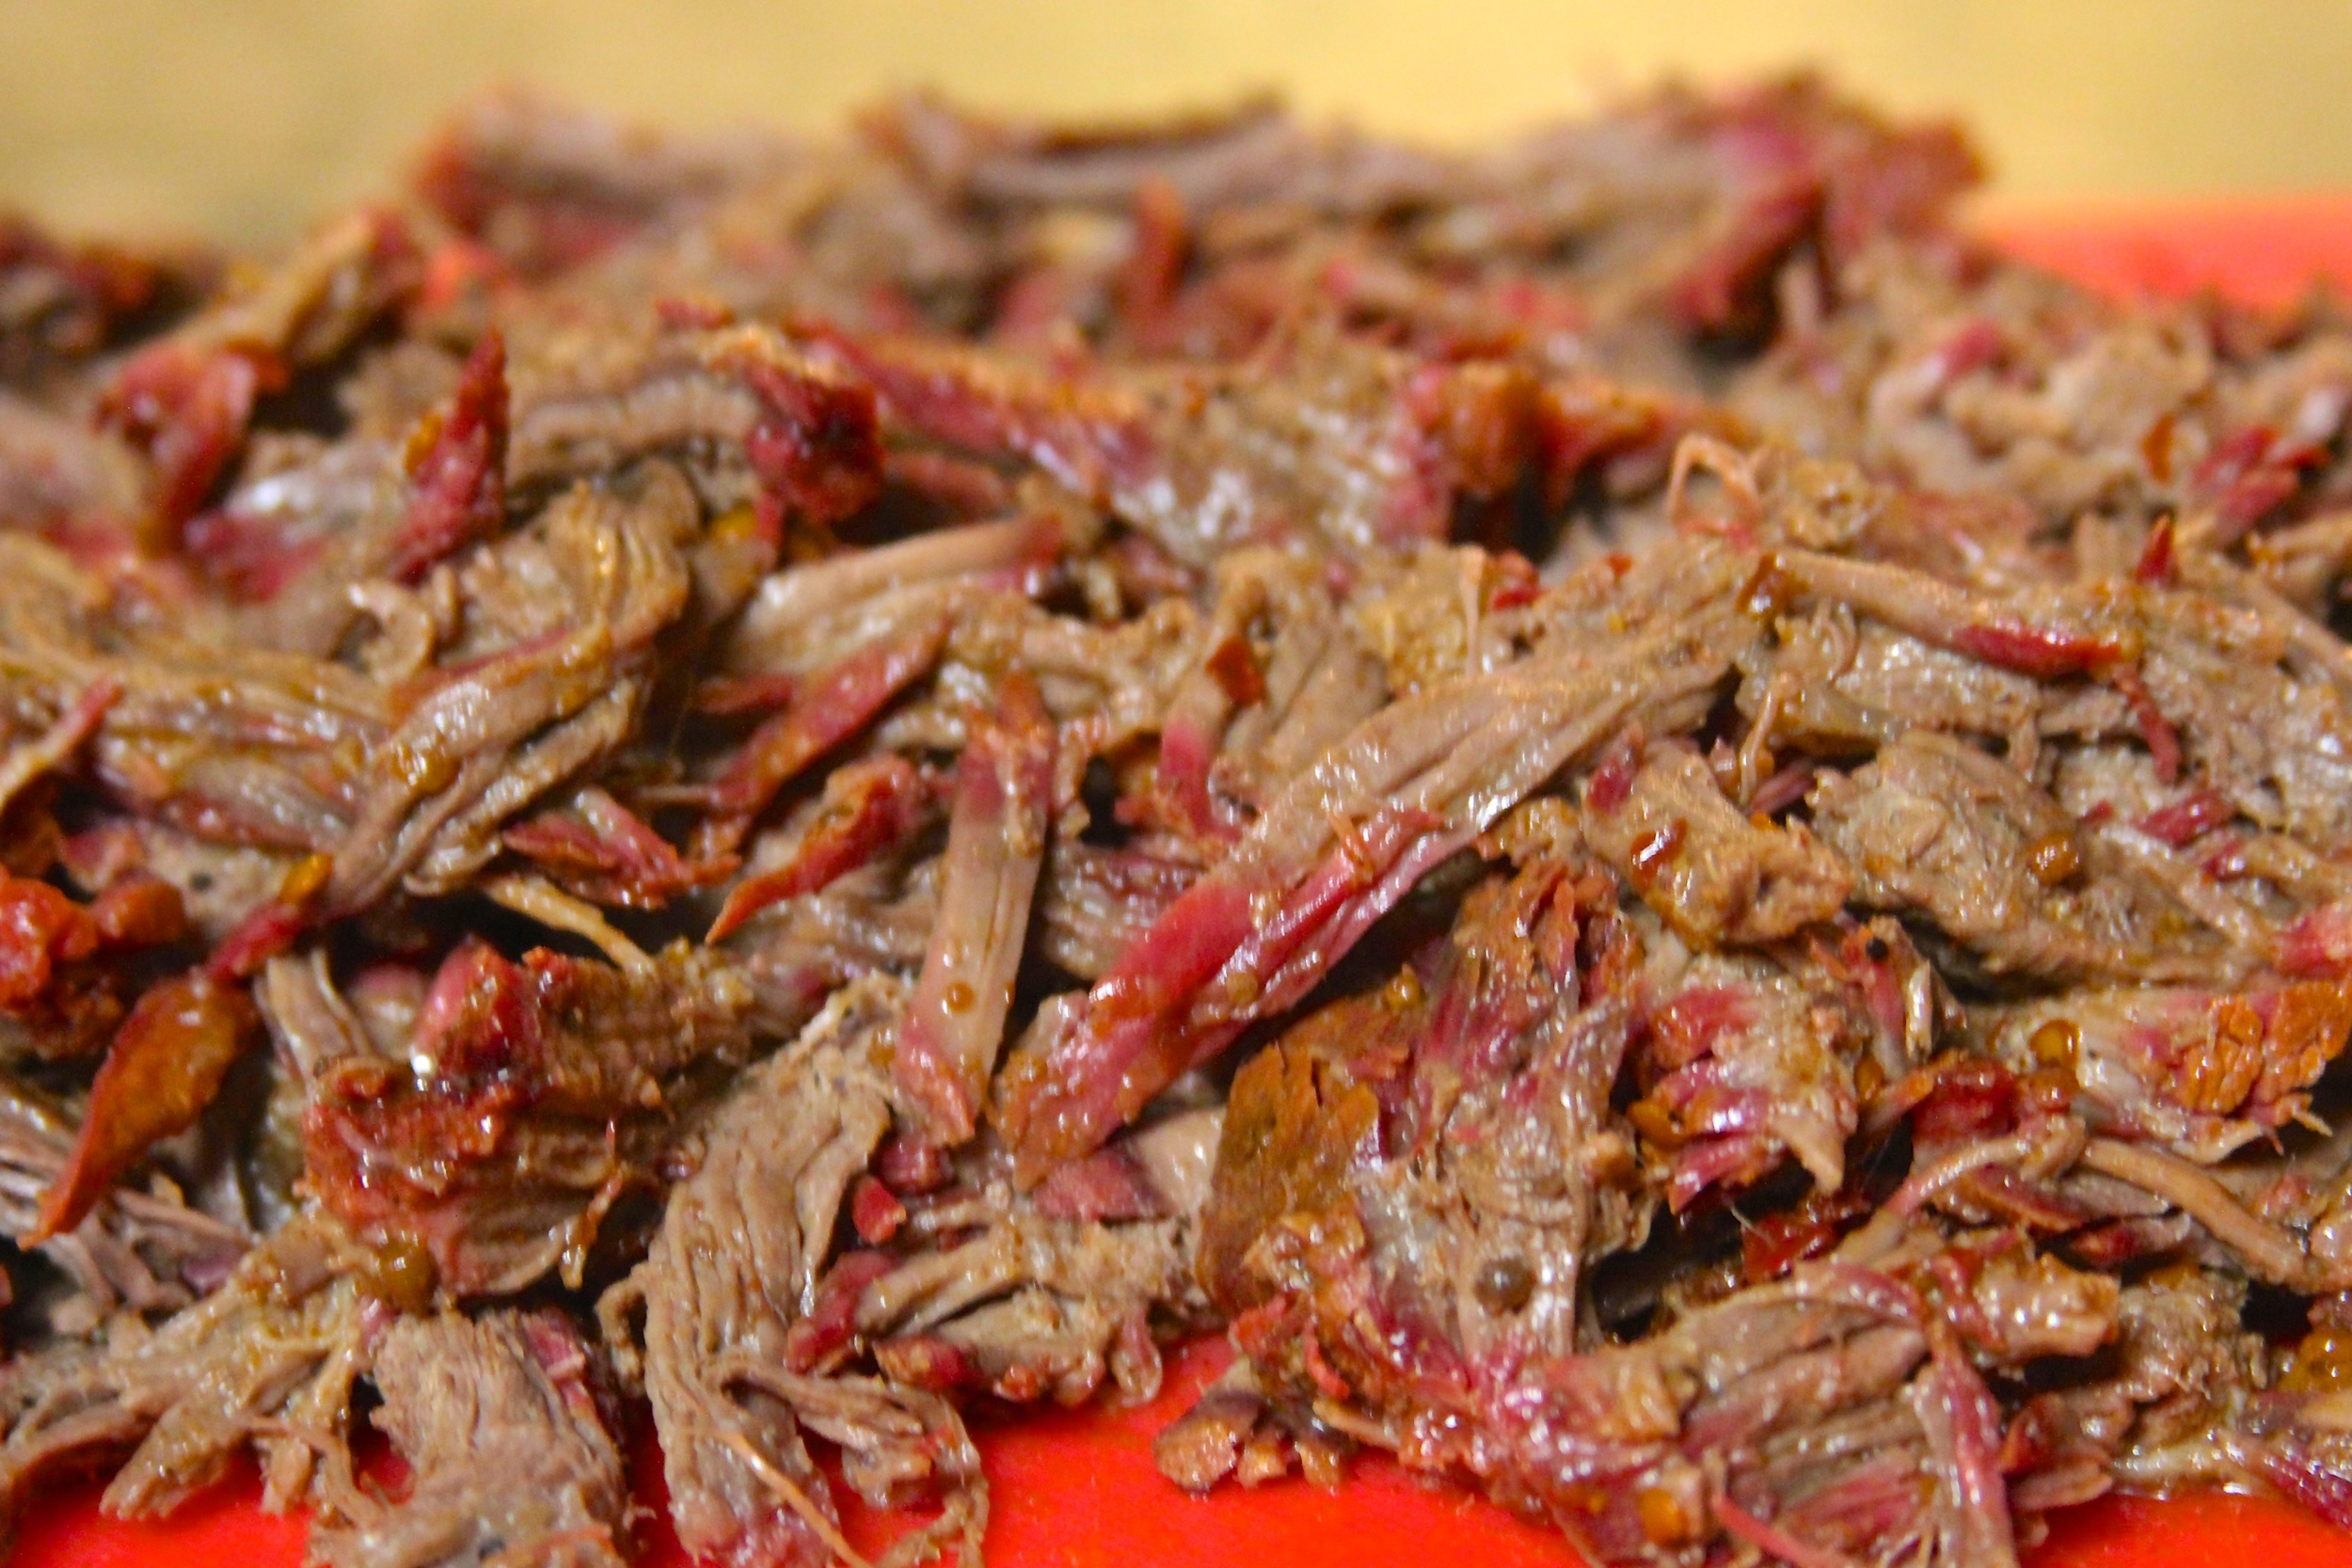 Shredded chuck roast